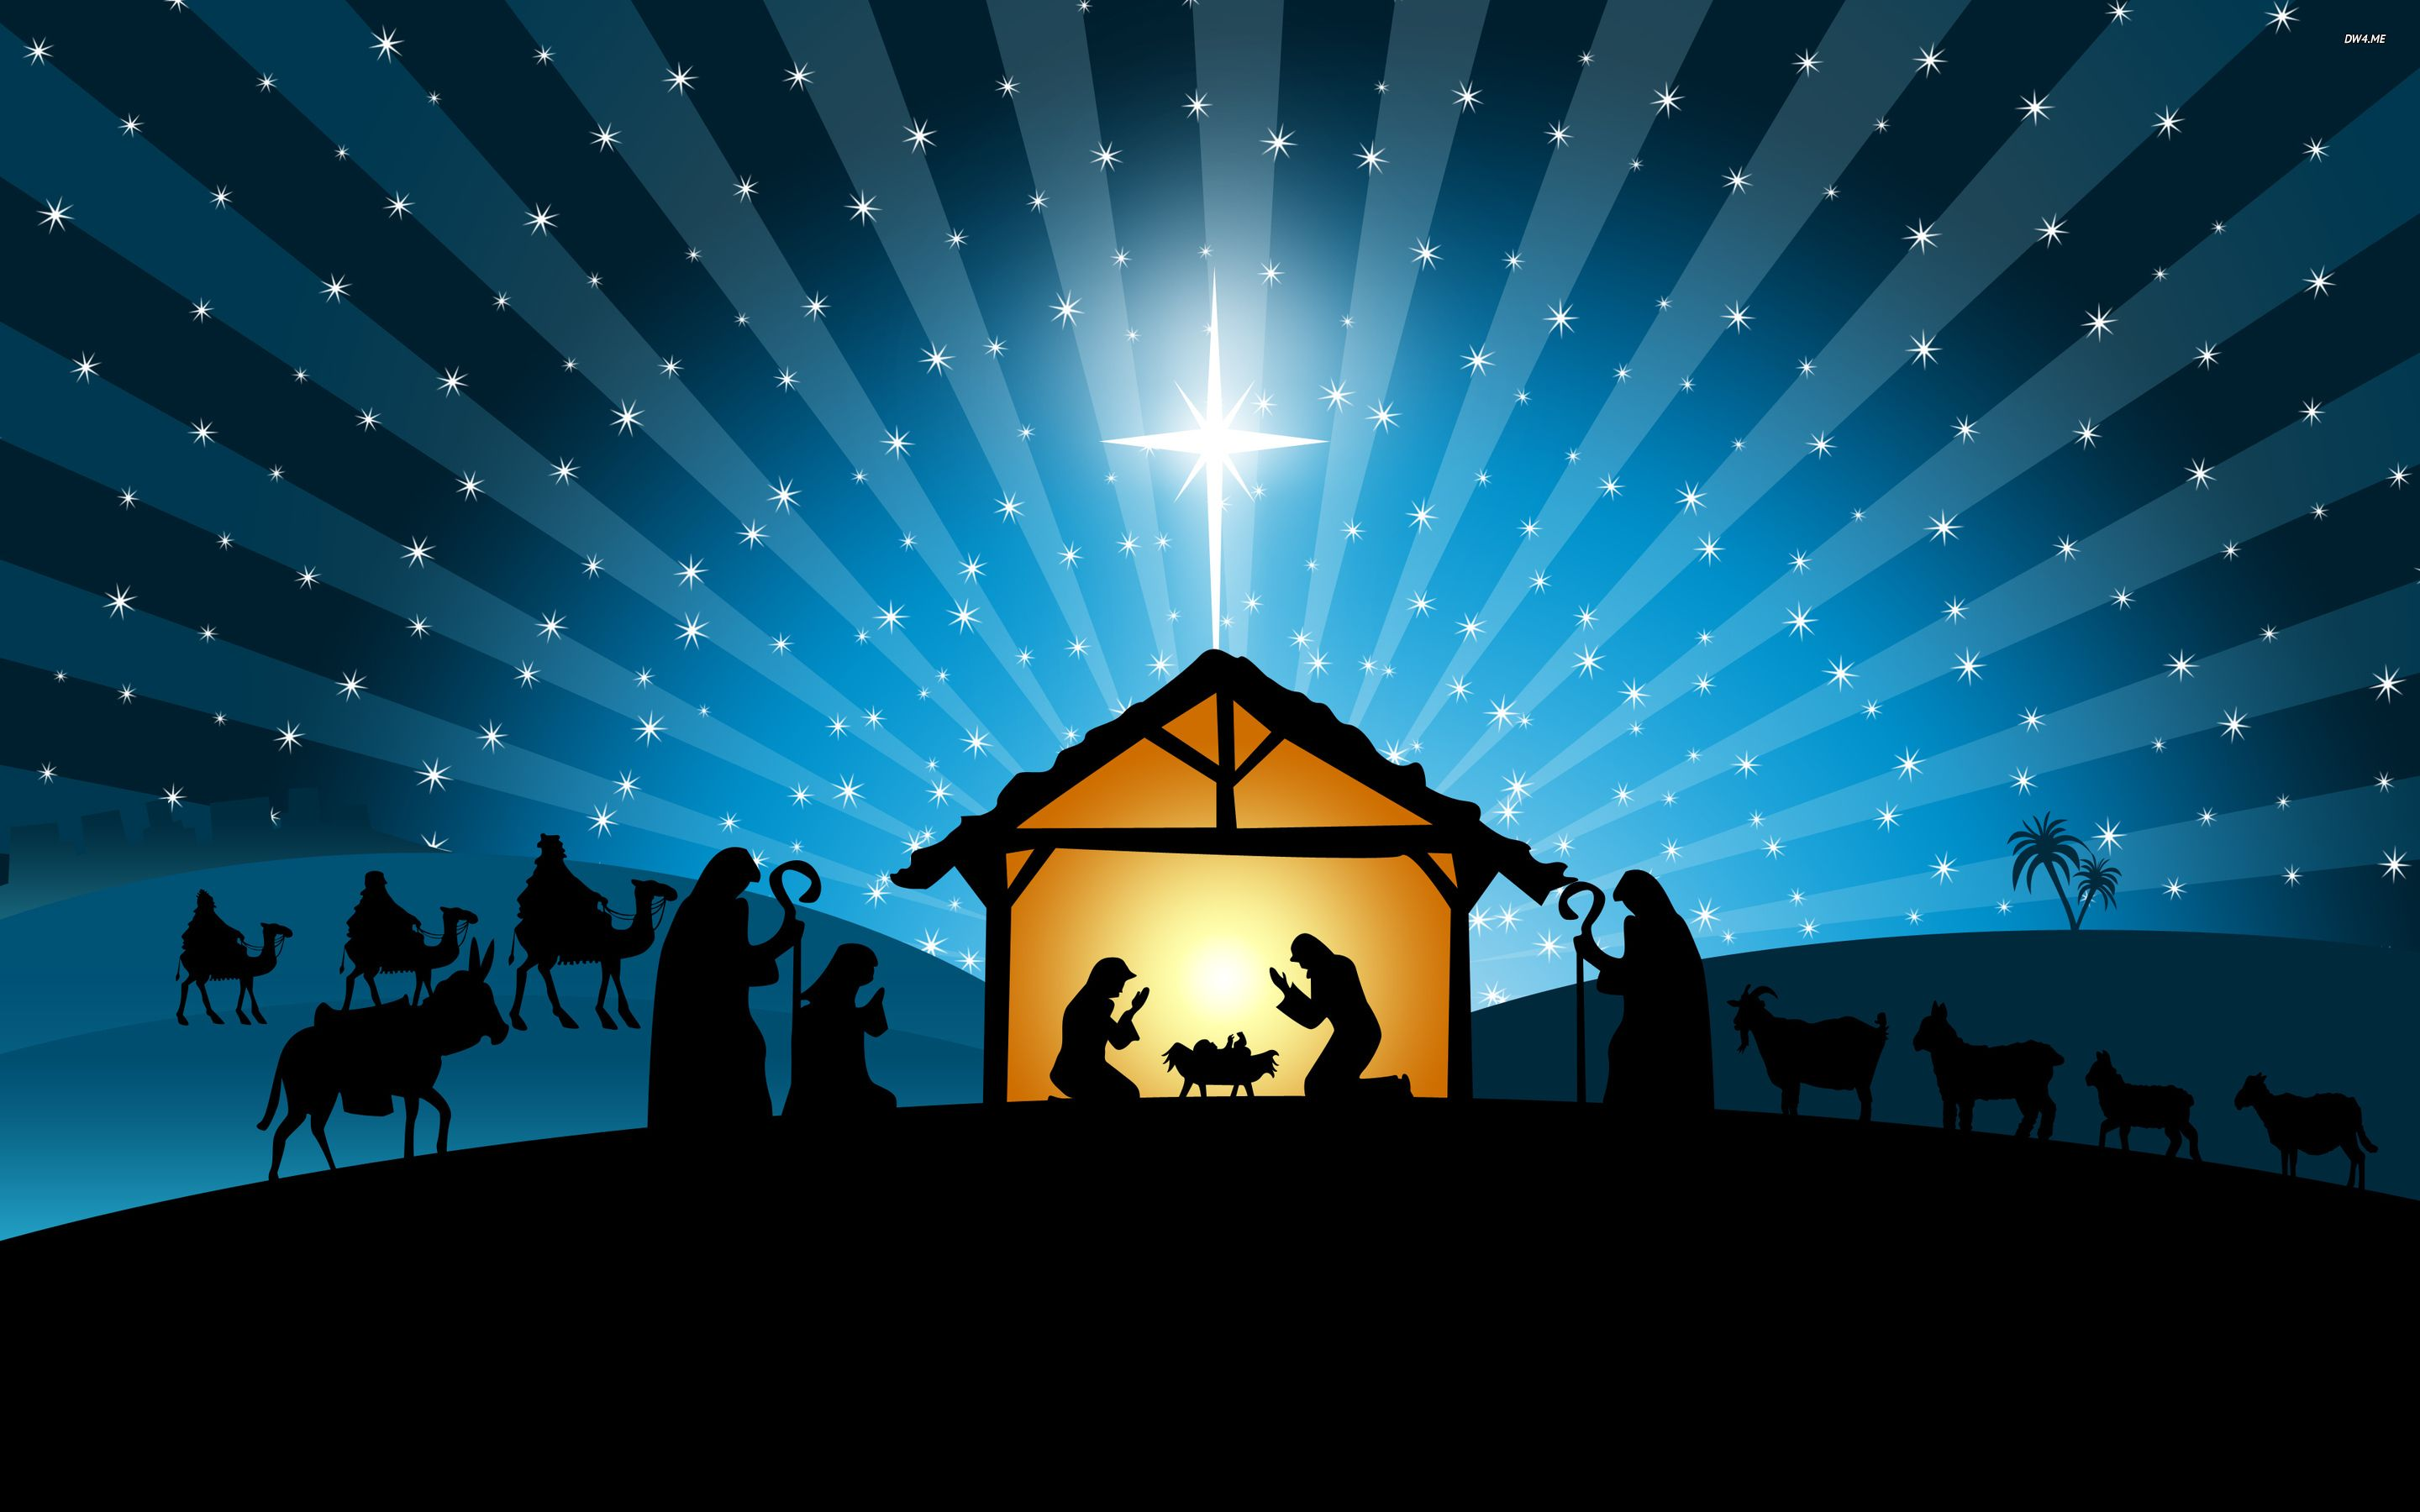 Christmas Nativity Scene Wallpaper - WallpaperSafari | Merry christmas  wallpaper, Christmas nativity scene, Christmas wallpaper